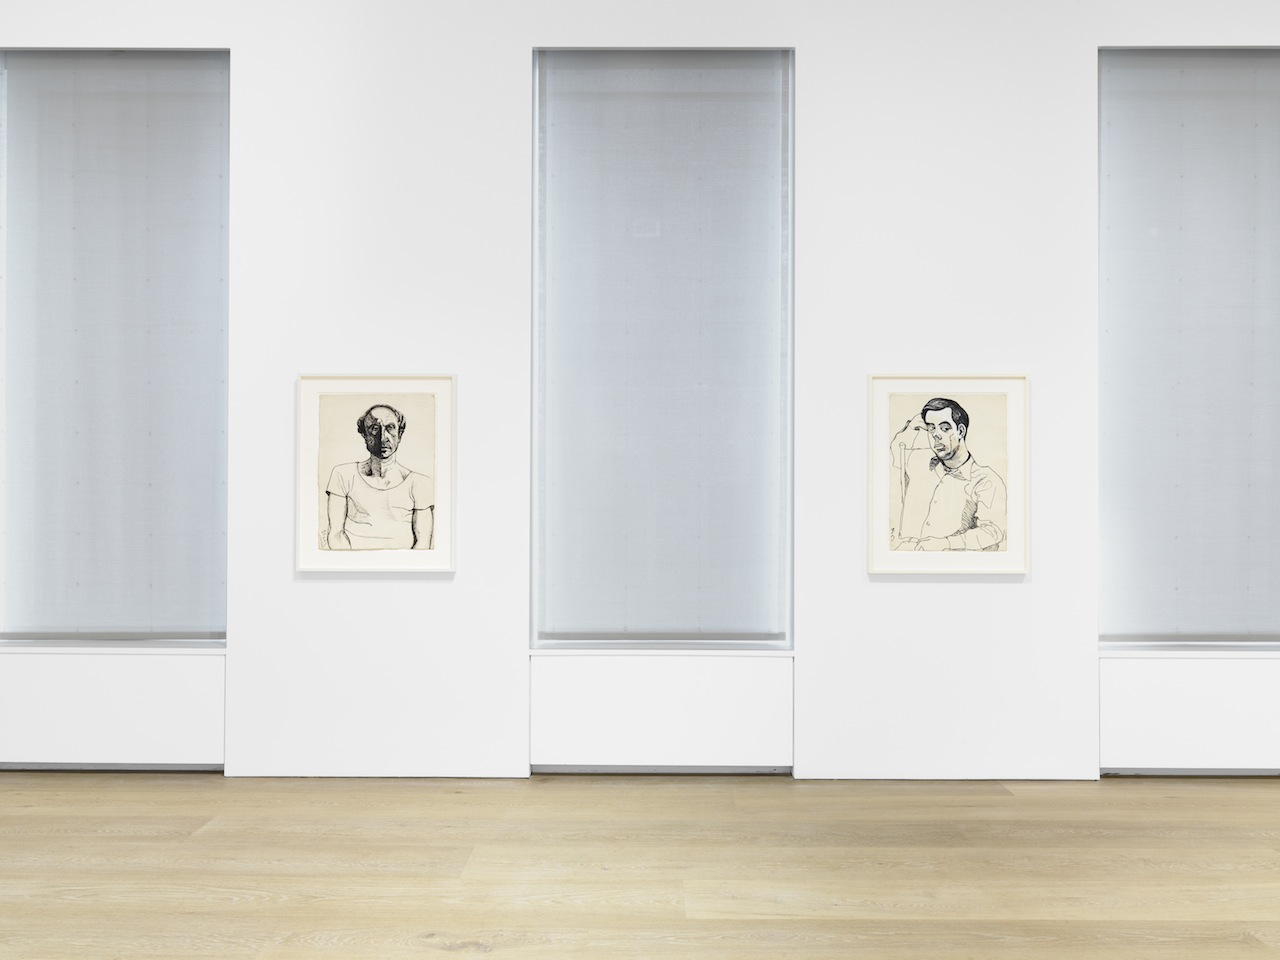 Alice Neel Installation view from the 2015 solo exhibition Alice Neel: Drawings and Watercolors 1927-1978 at David Zwirner, New York © The Estate of Alice Neel Courtesy David Zwirner, New York/London